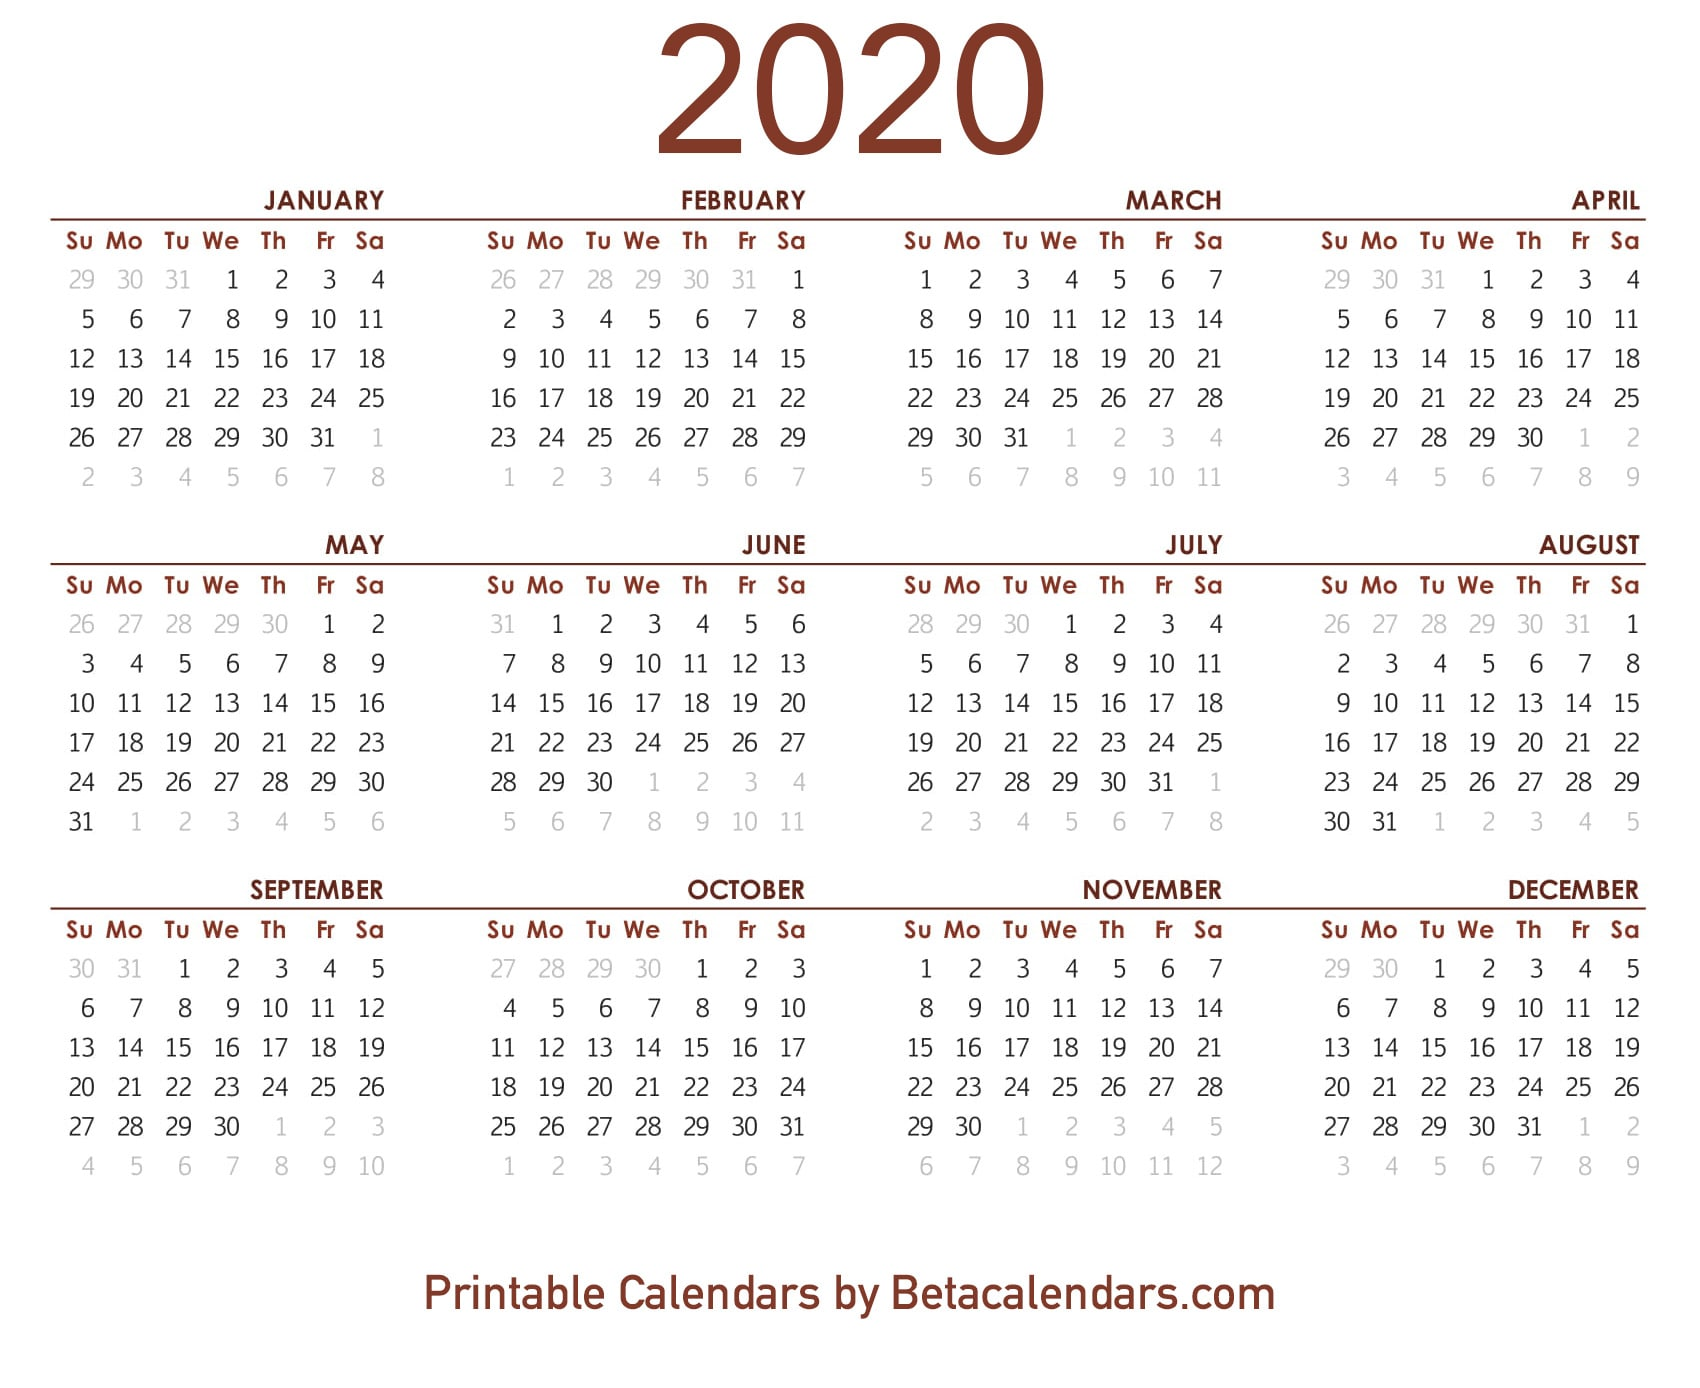 photo regarding Free Printable 2020 Calendar named 2020 Calendar - Beta Calendars